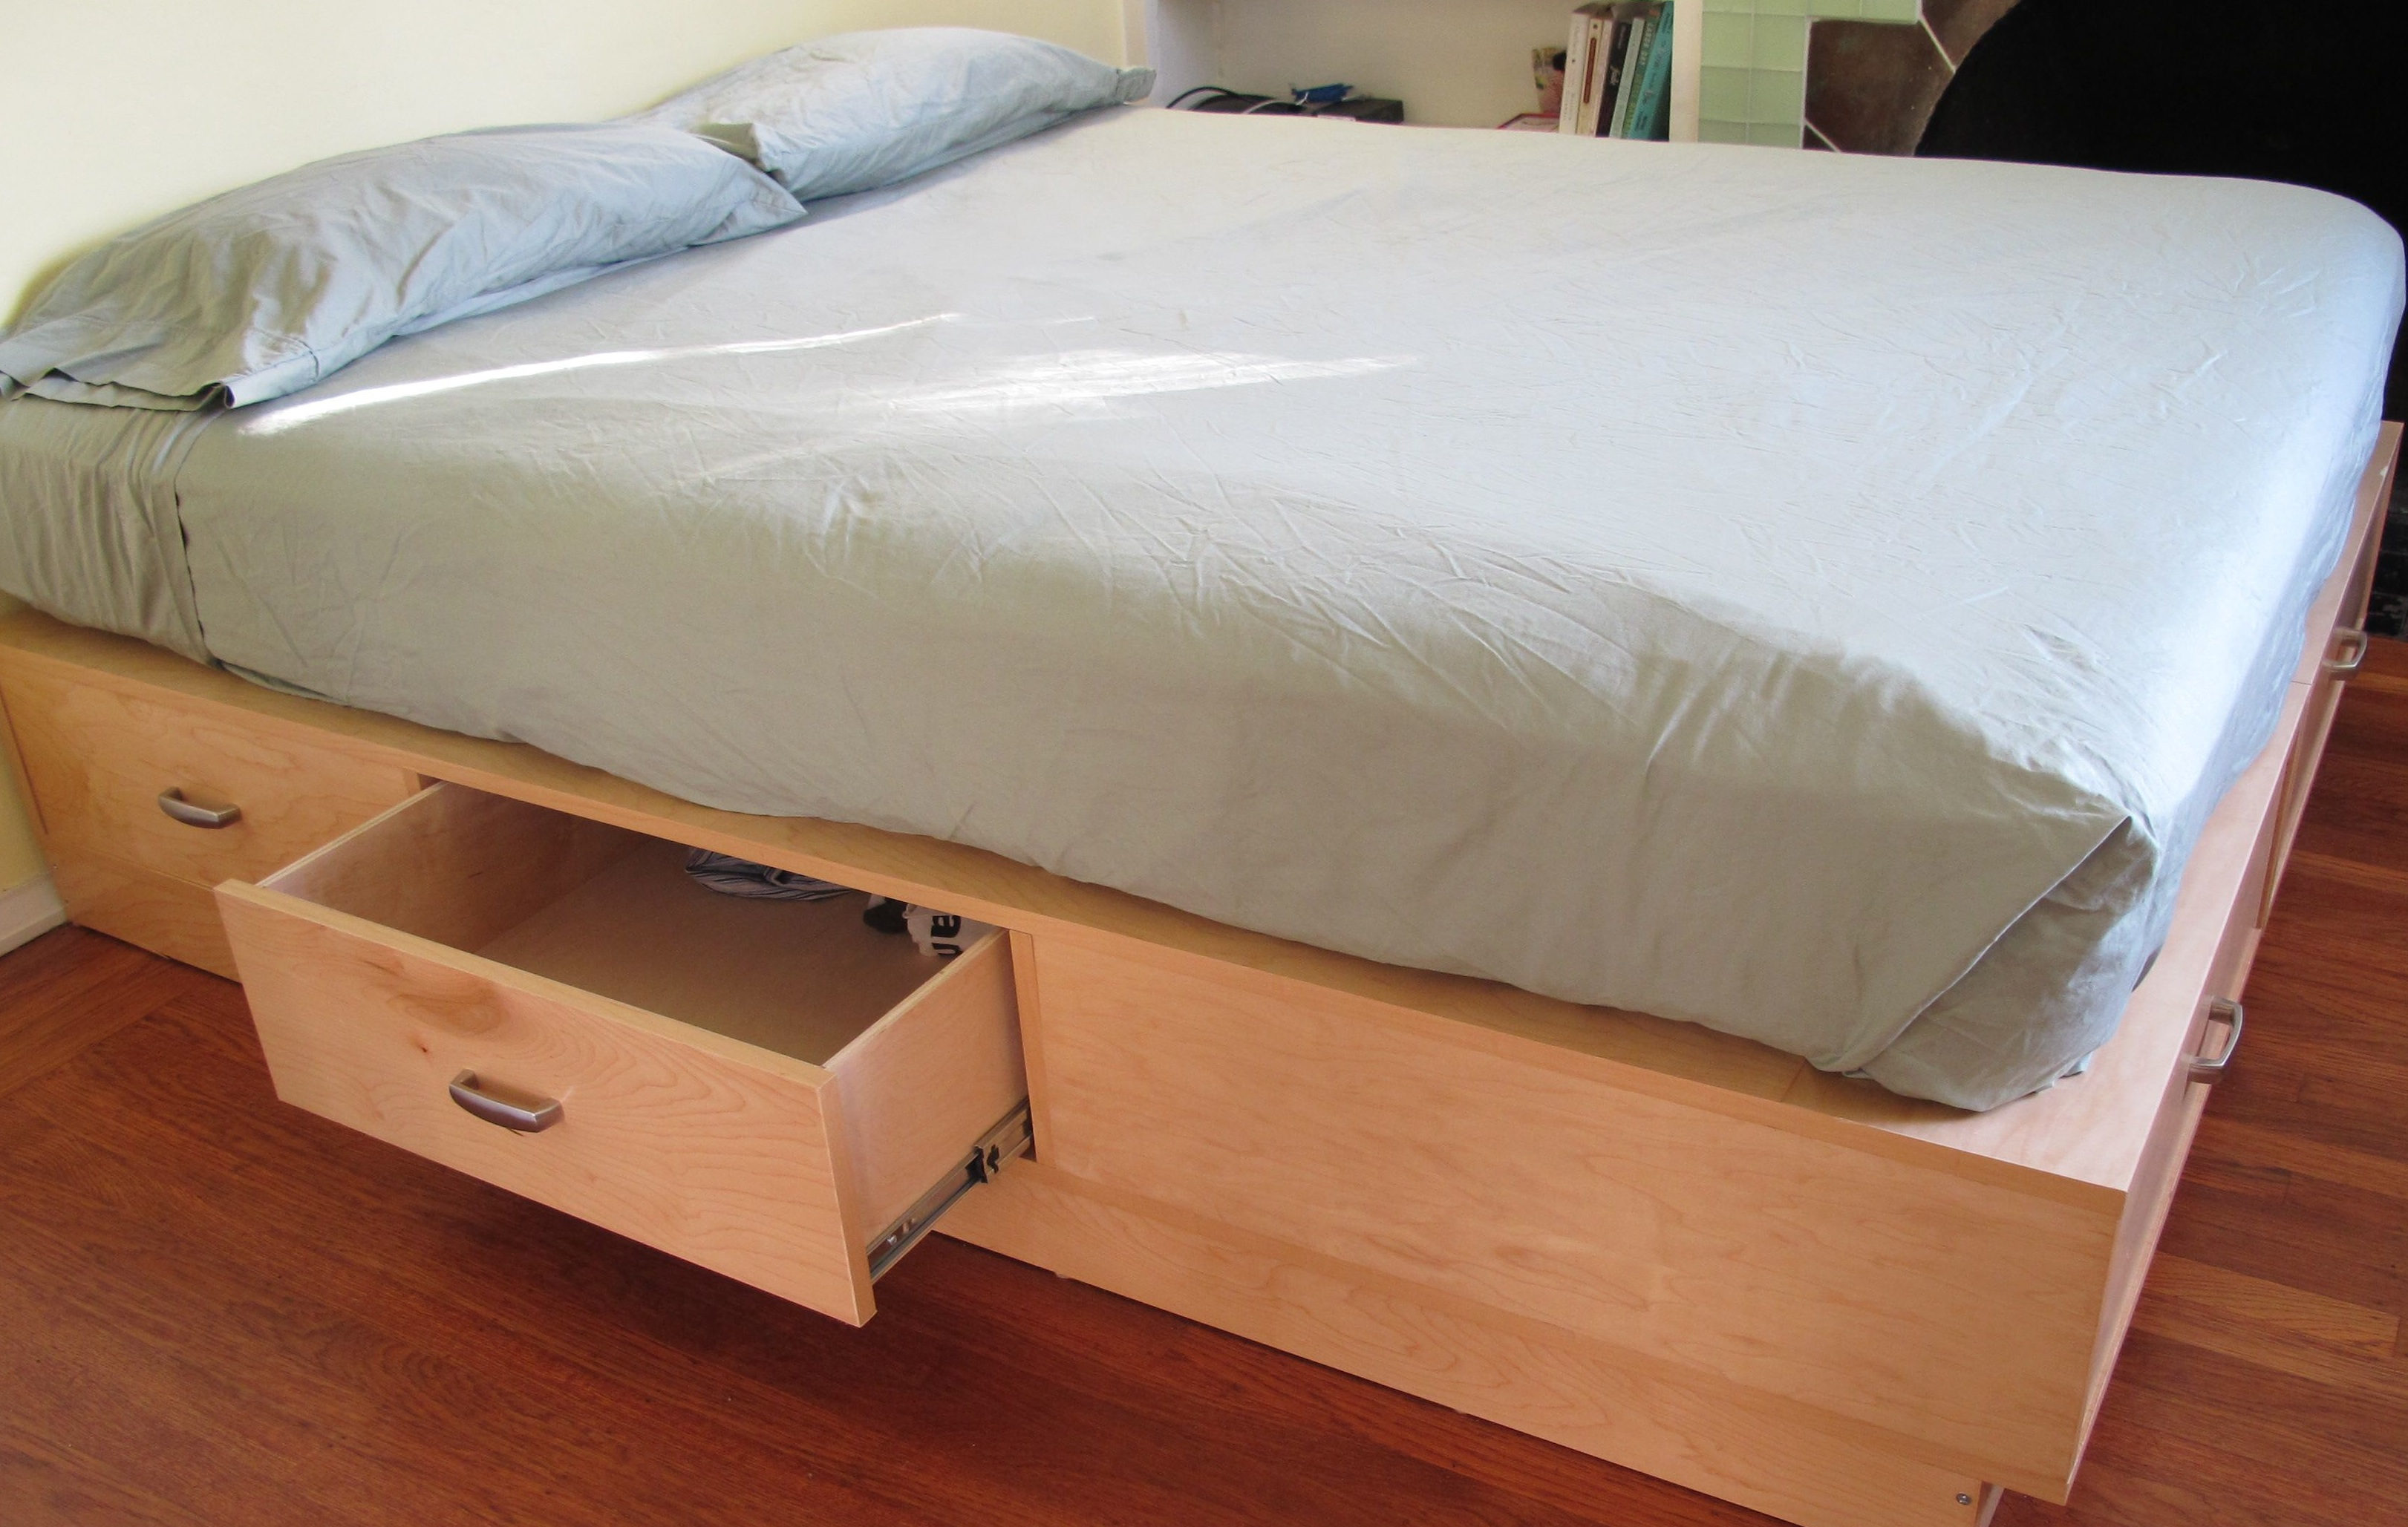 Beds With Drawers Underneath